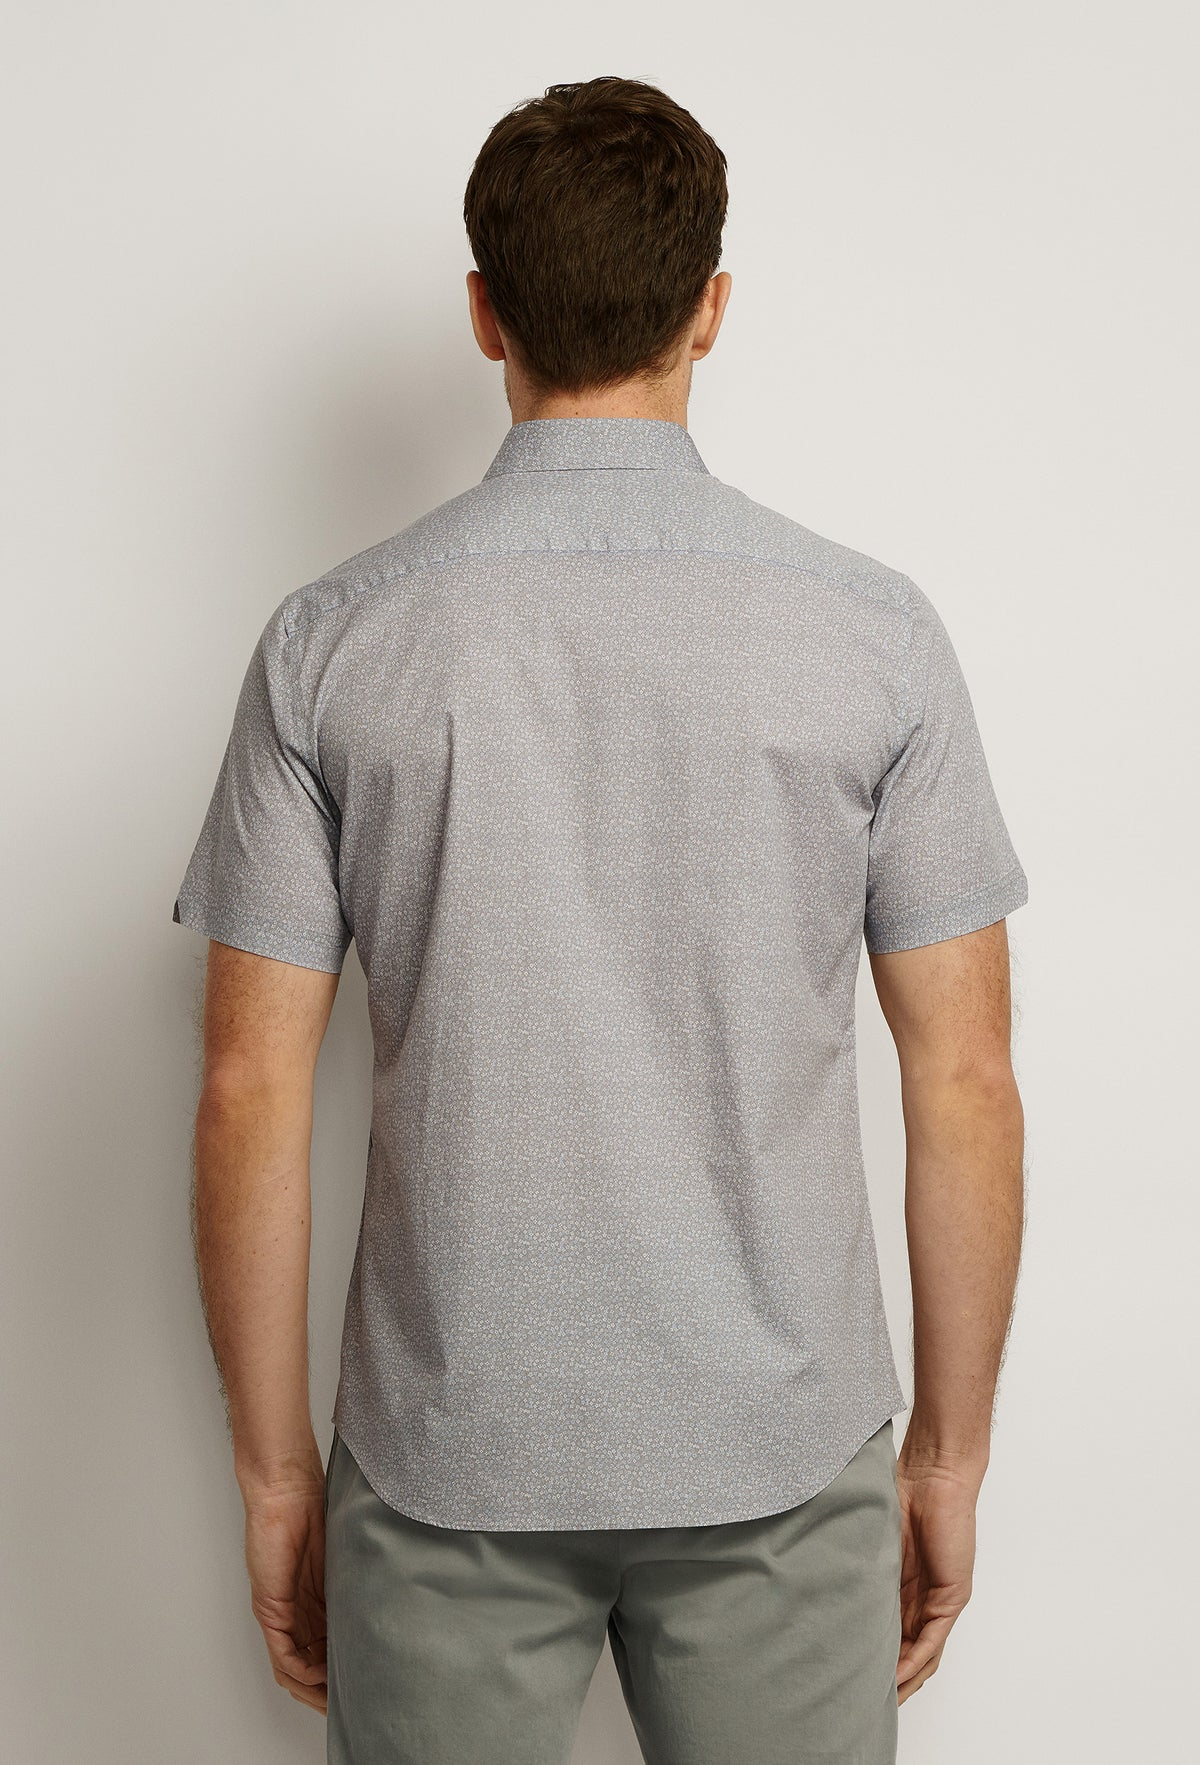 ZACHARY-PRELL-Parenty-ShirtsModern-Menswear-New-Dress-Code